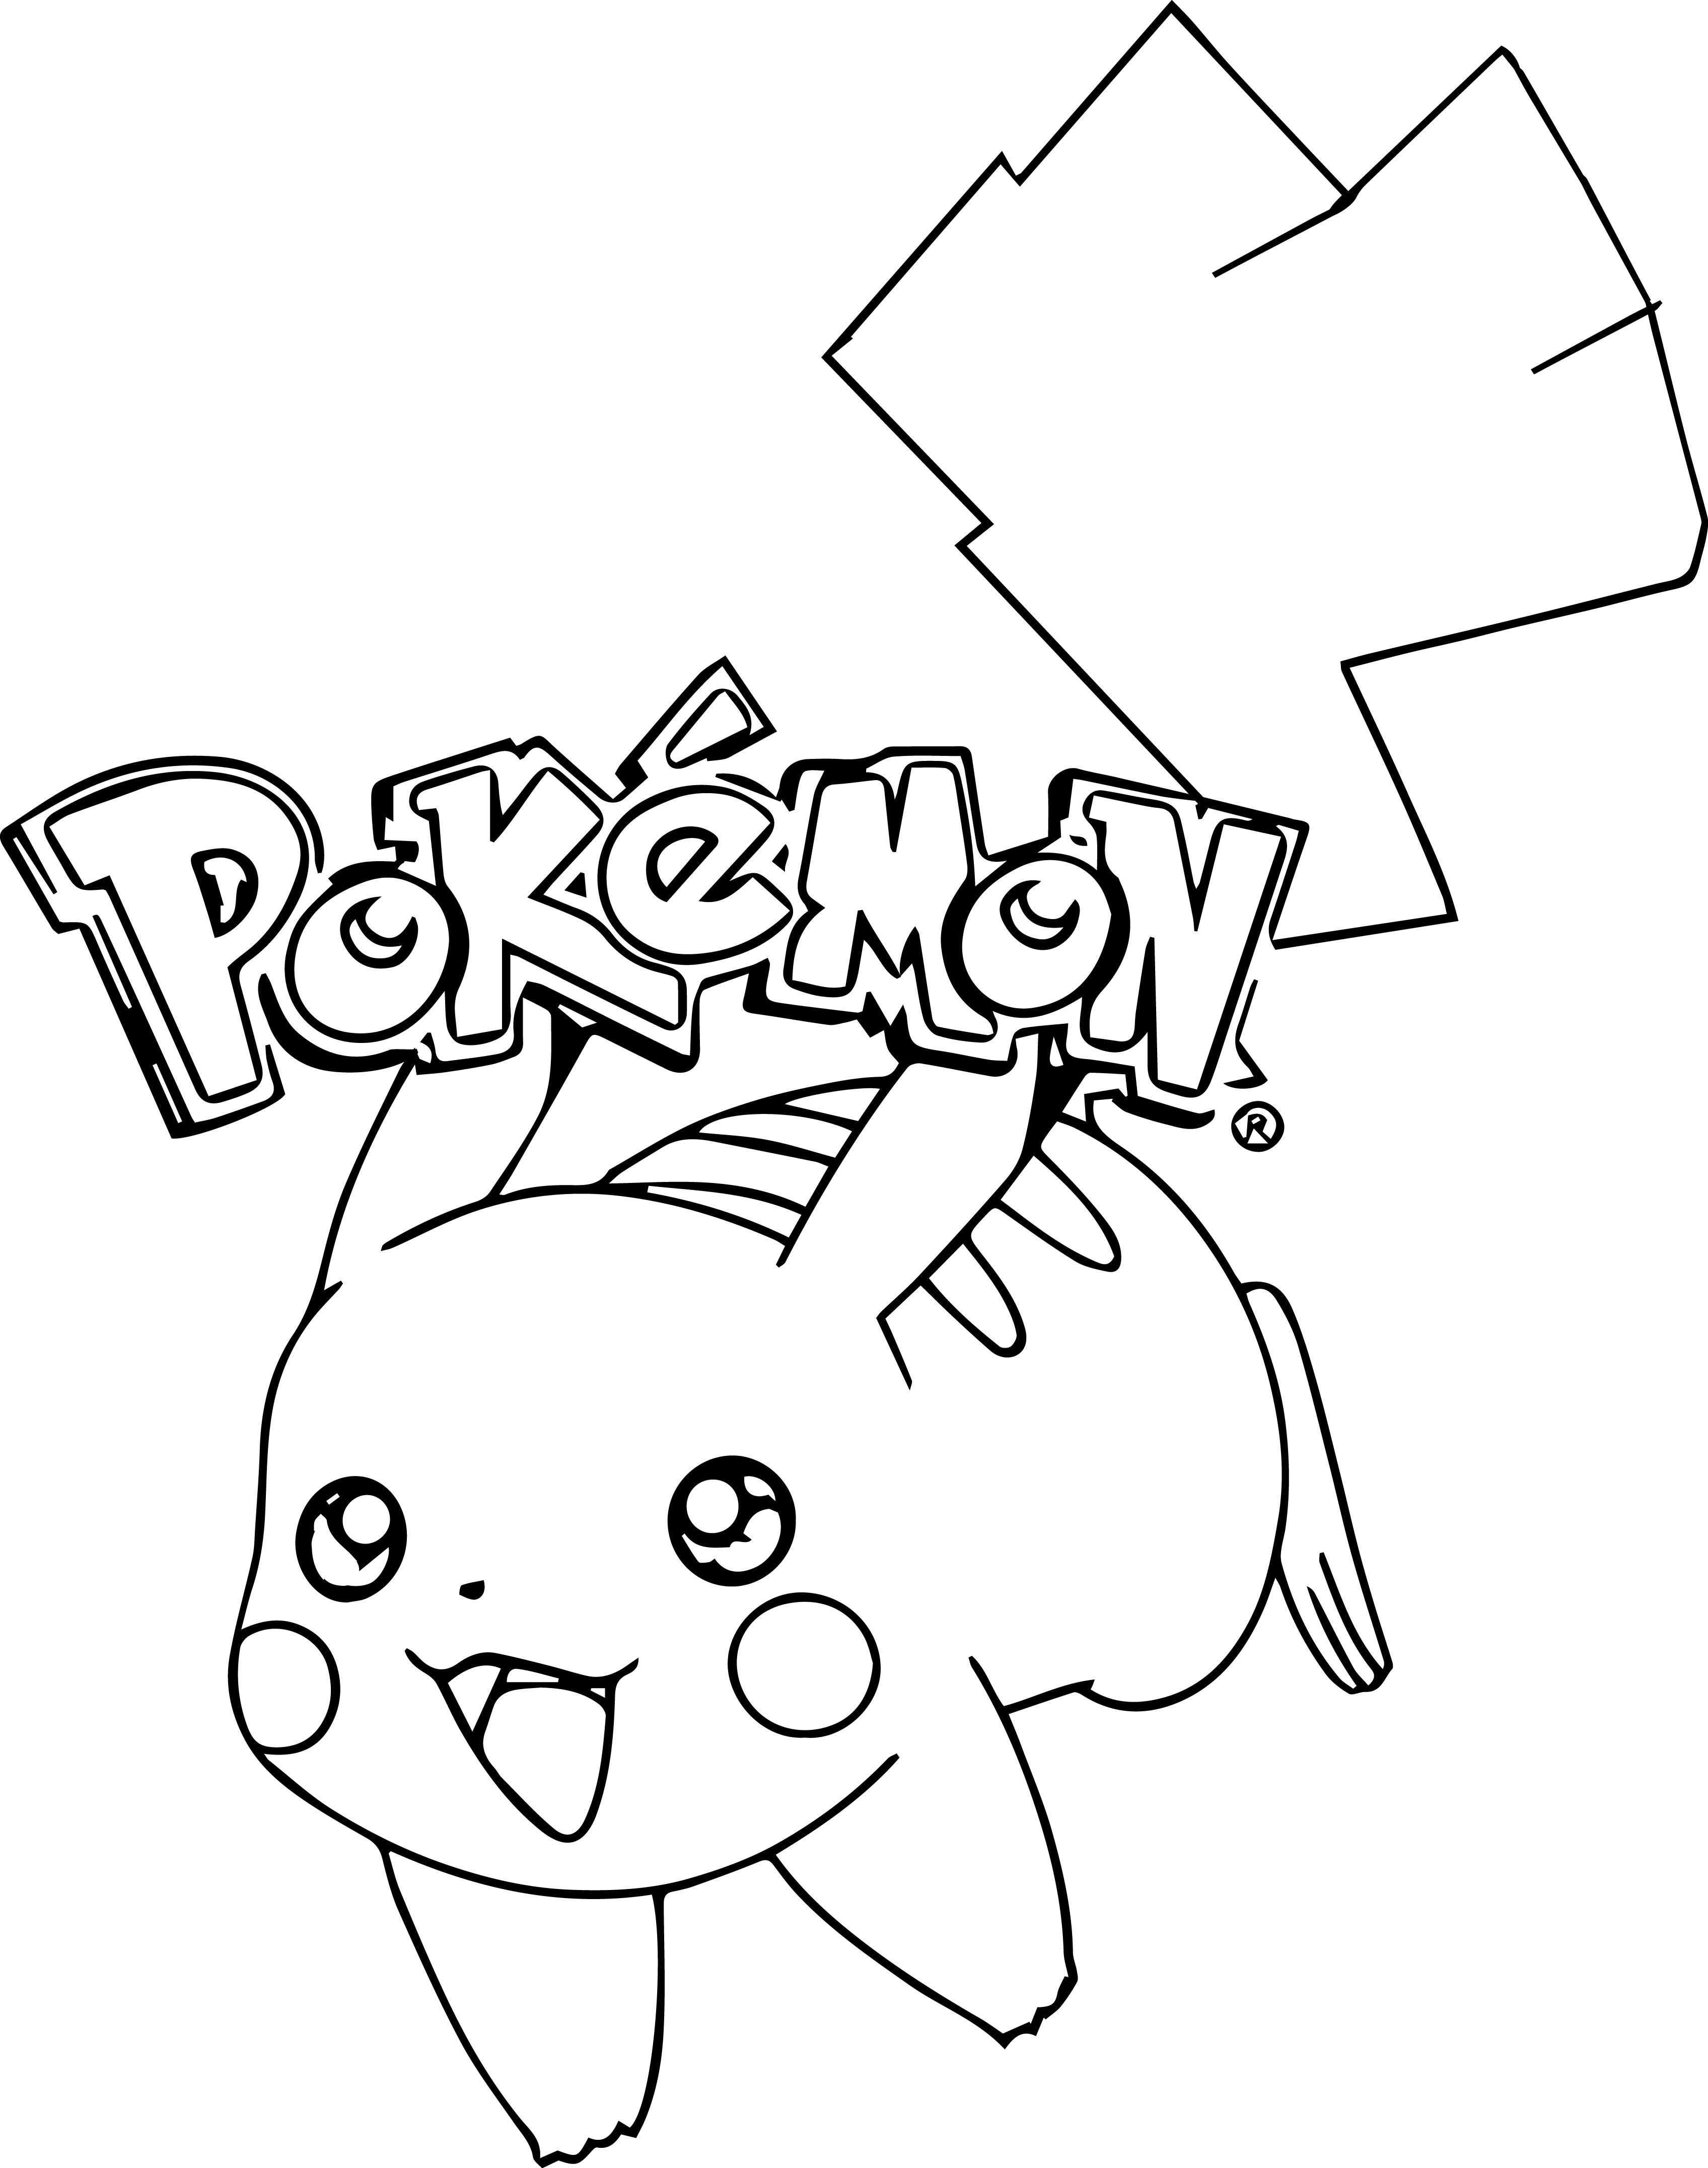 image relating to Pikachu Printable Coloring Pages titled Pikachu With Hat Coloring Internet pages at  Totally free